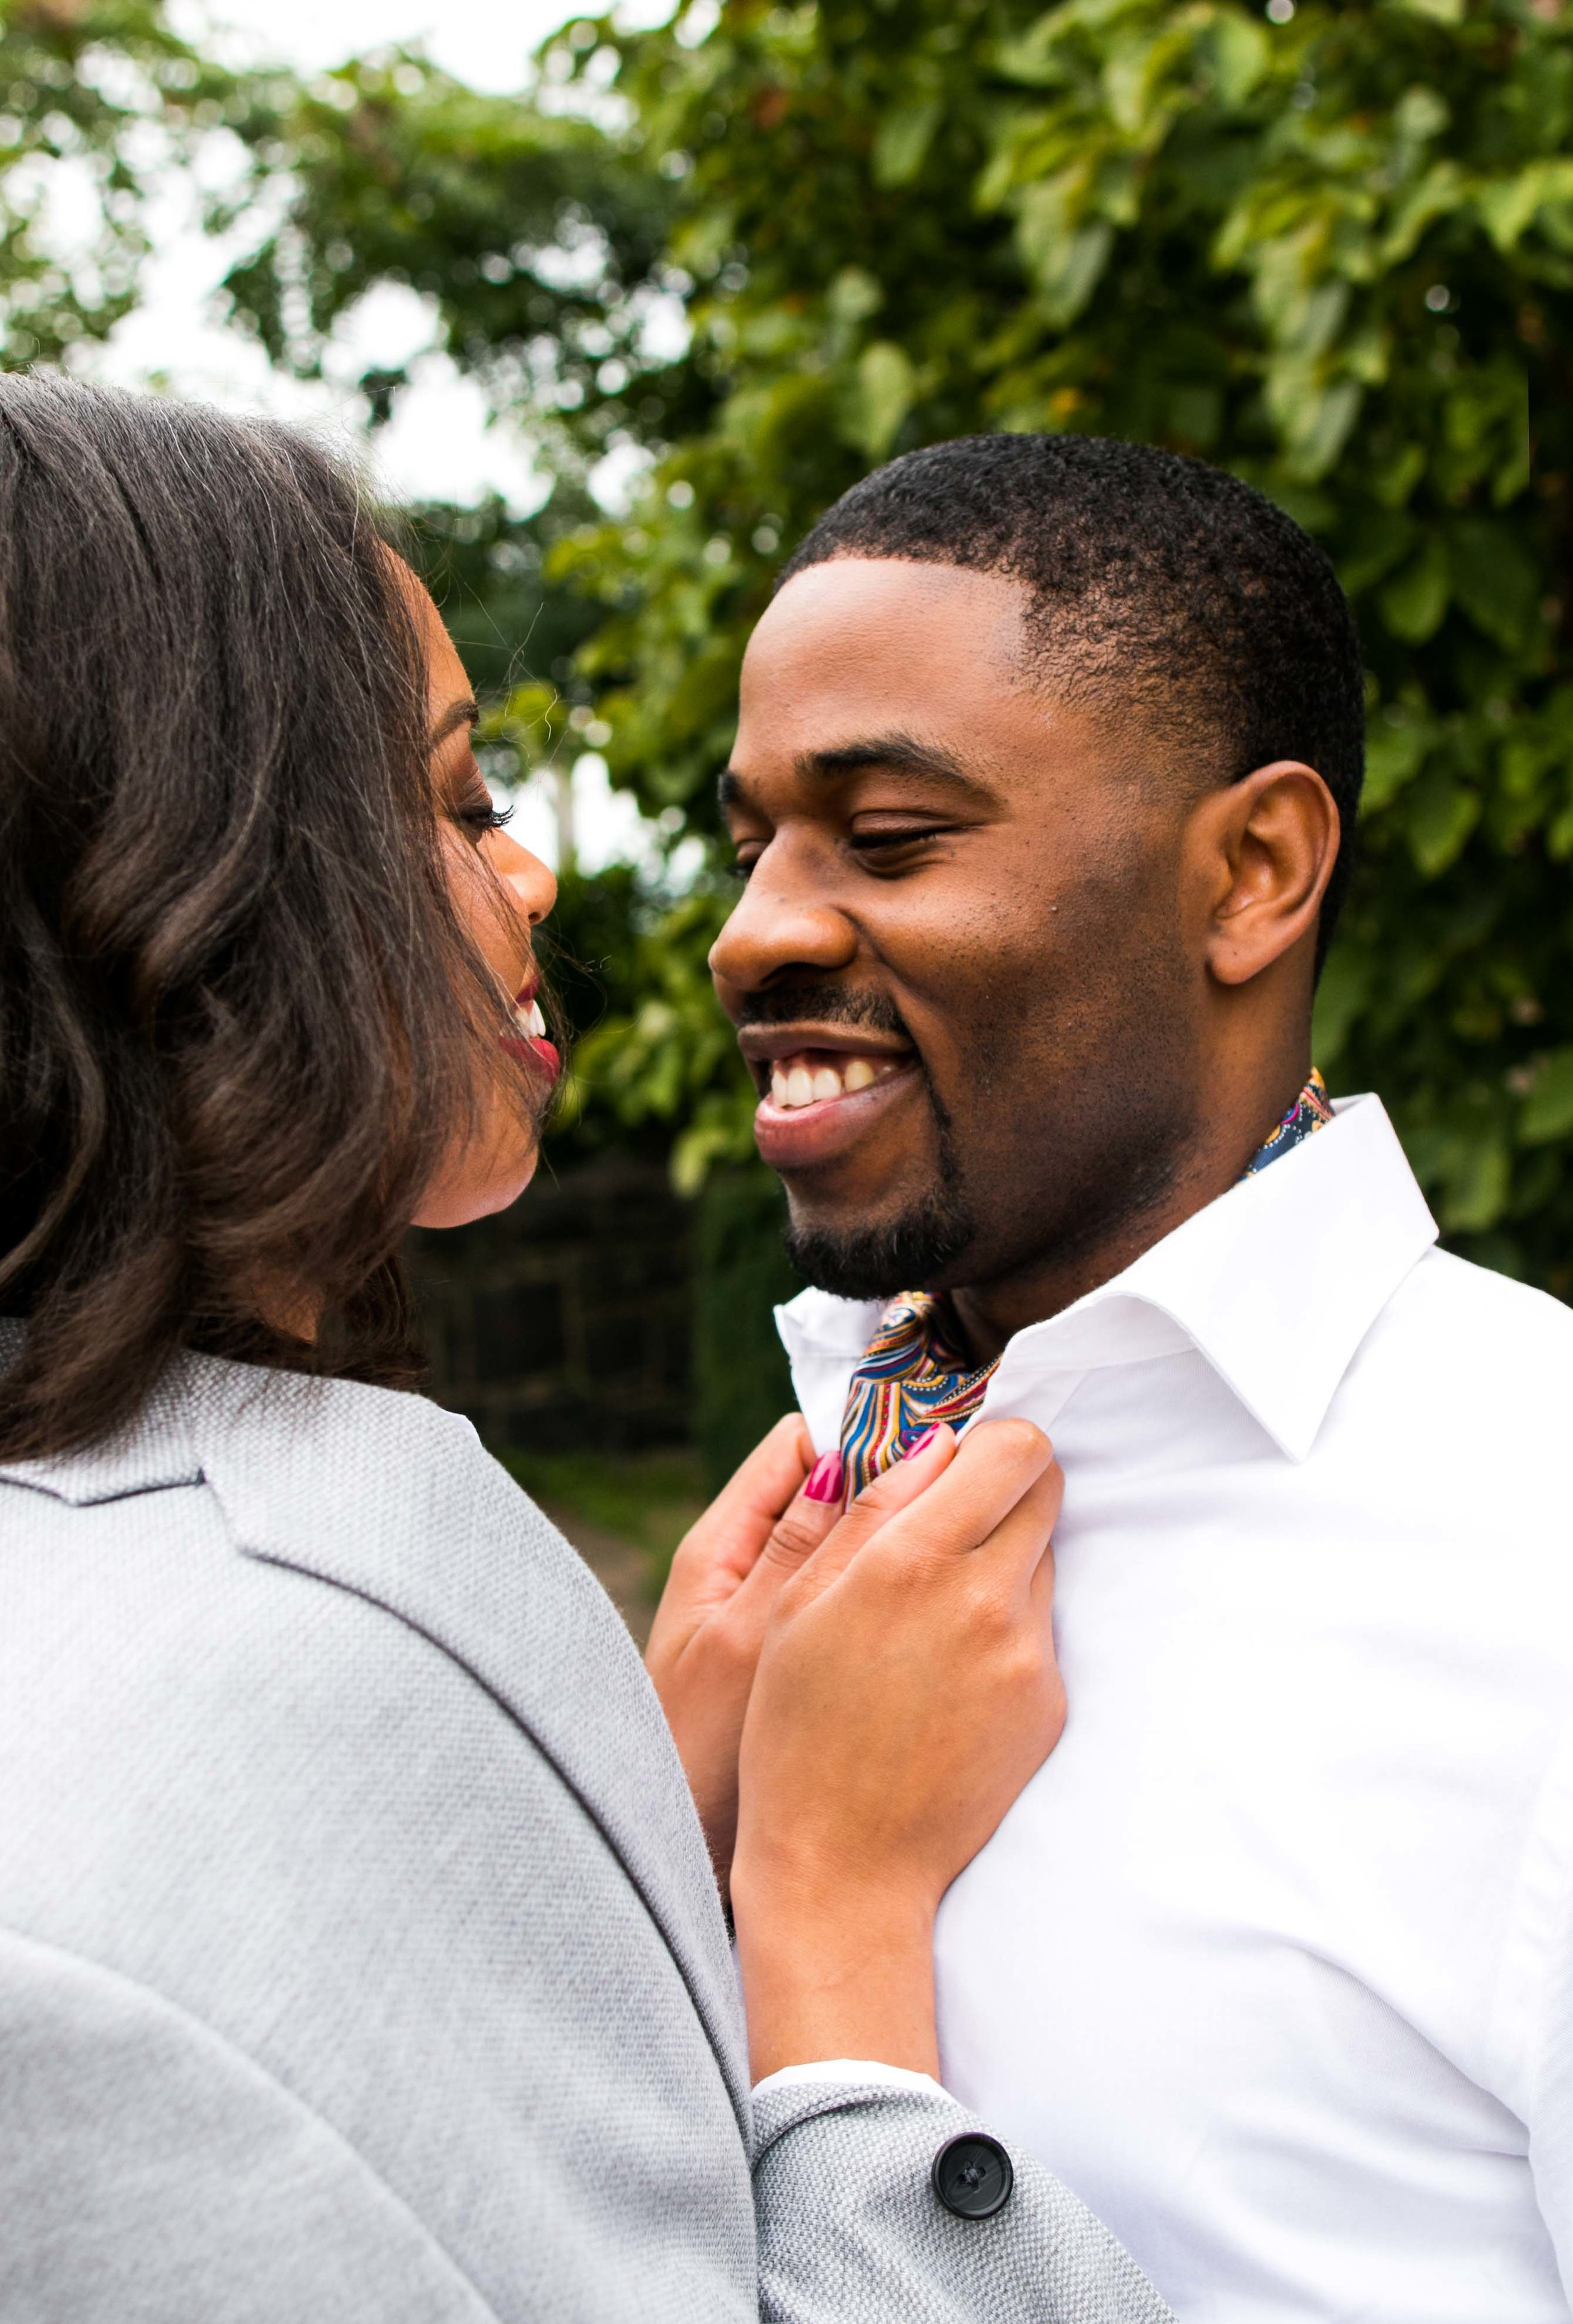 Brittany & Enyinna Engagement_092318_Low Res-170.jpg